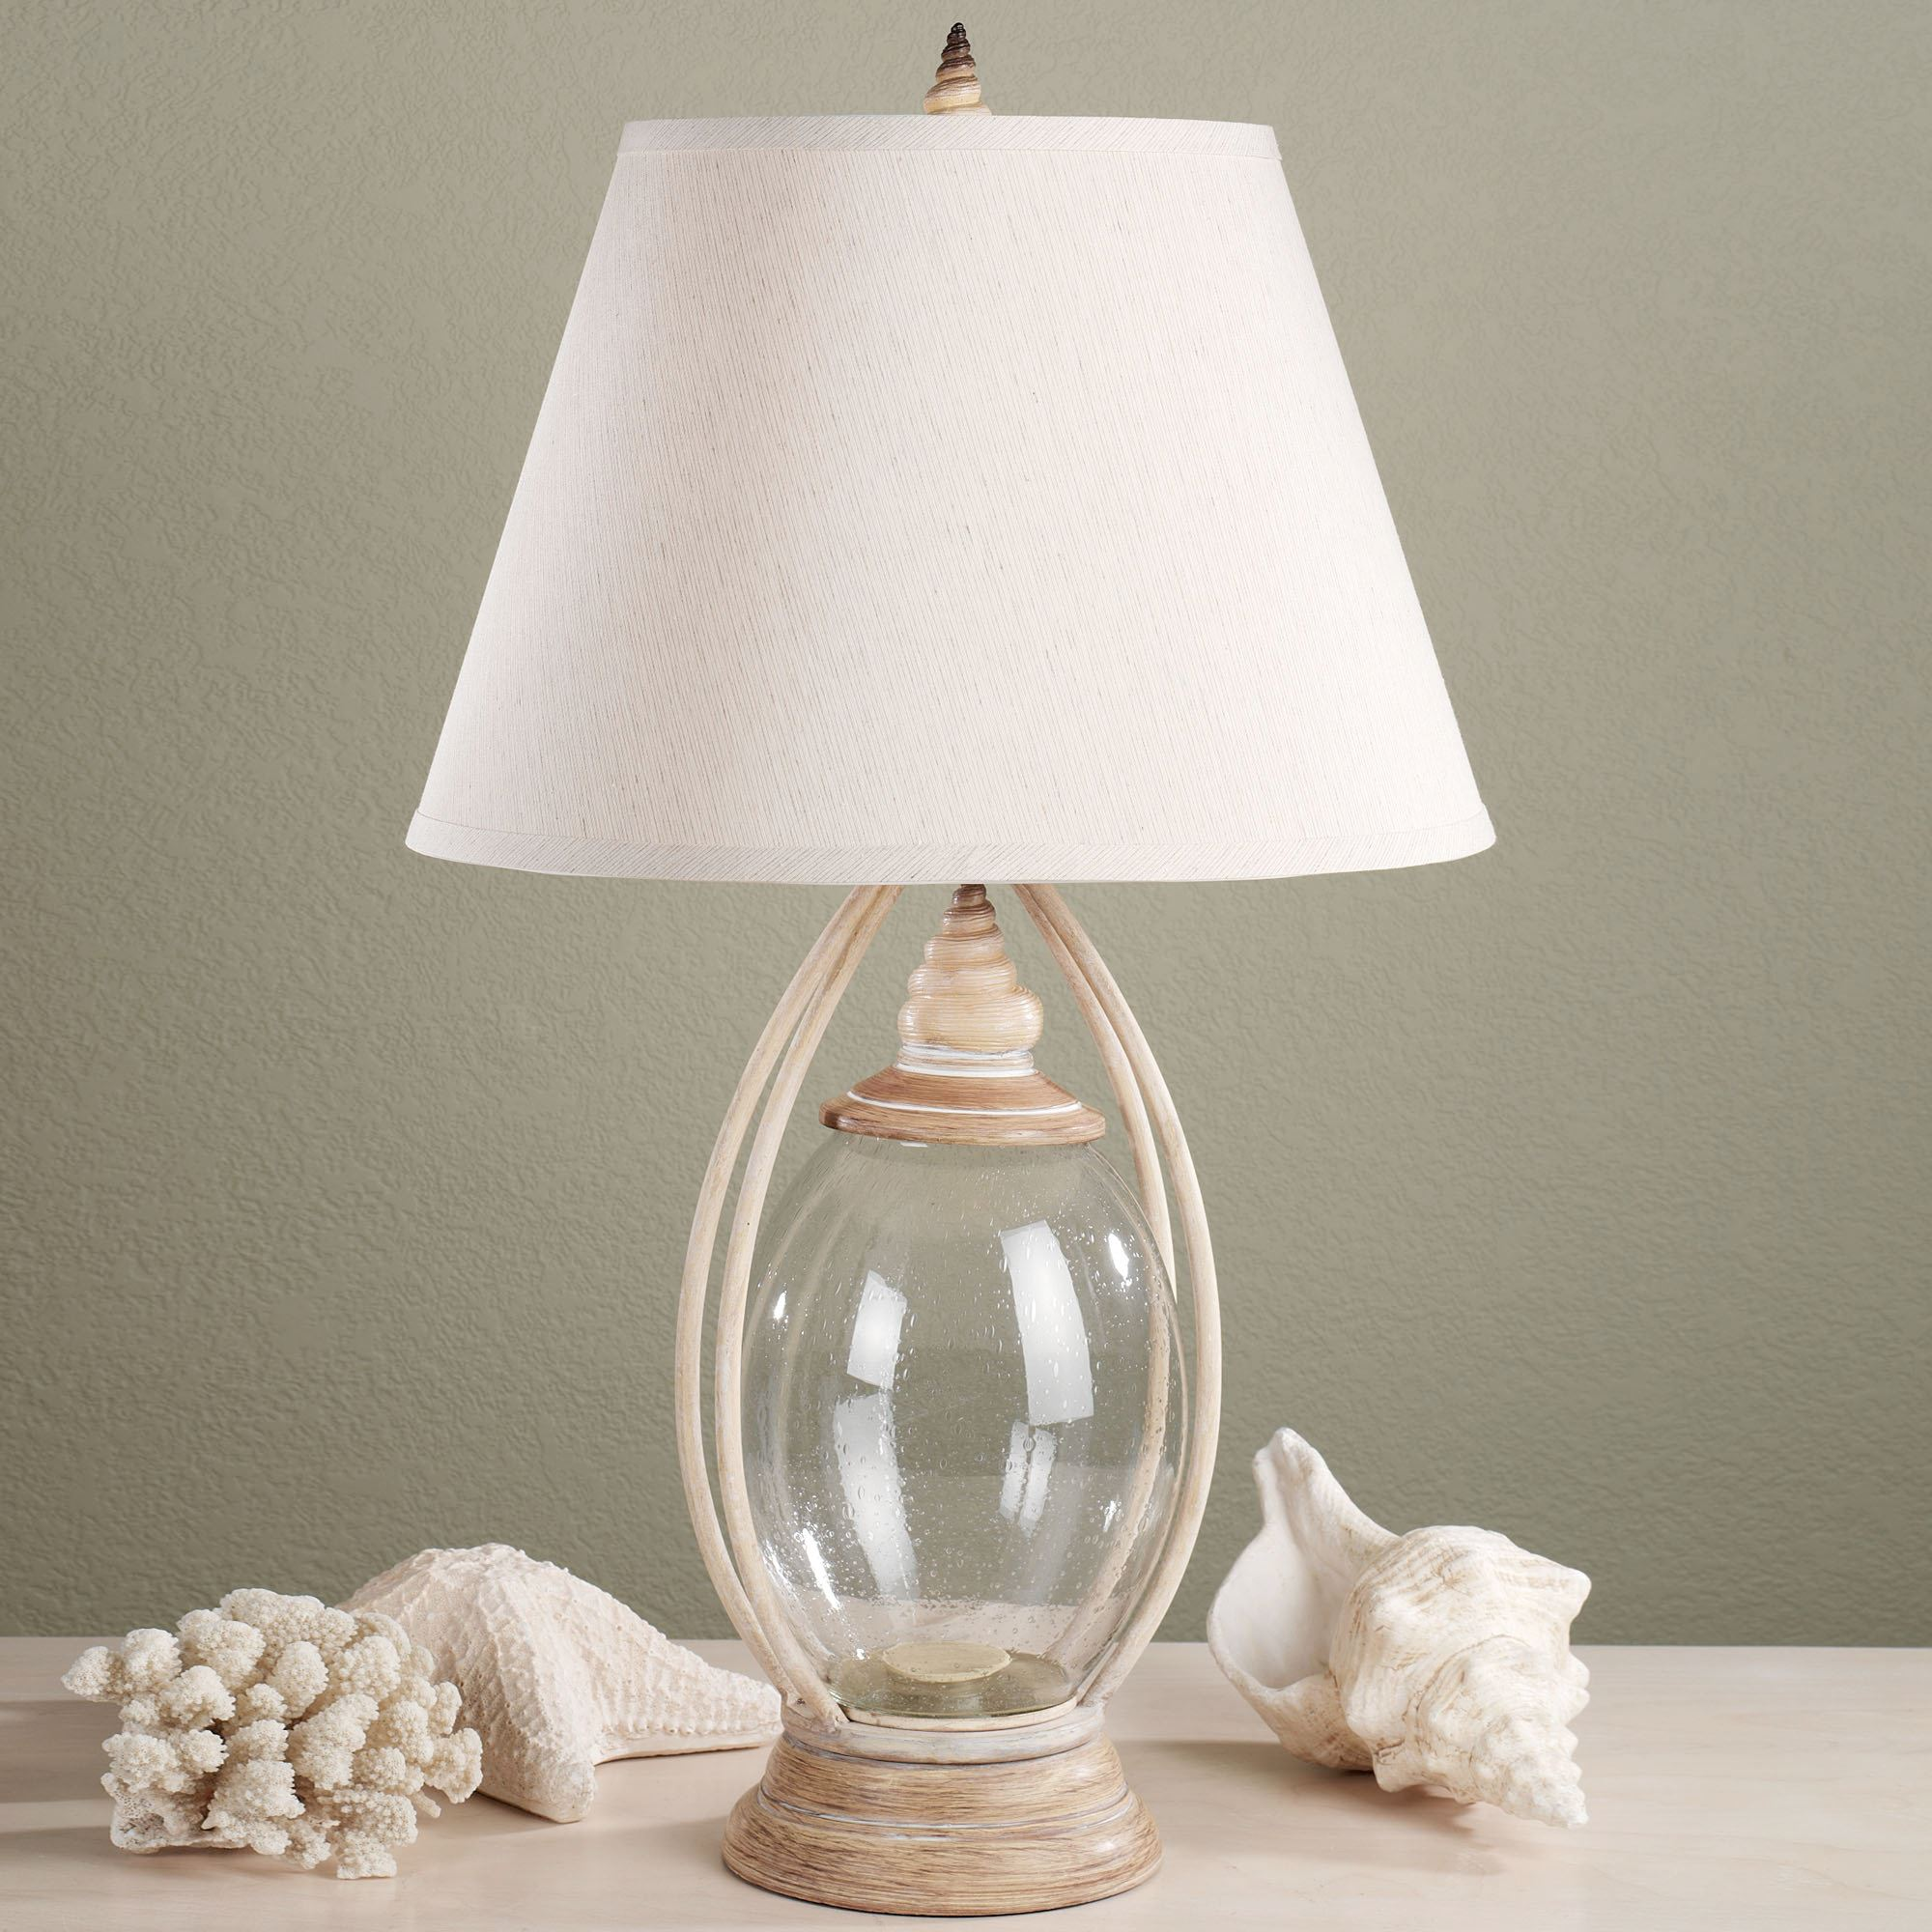 Sea Glass Table Lamp 10 Household Items For Every House